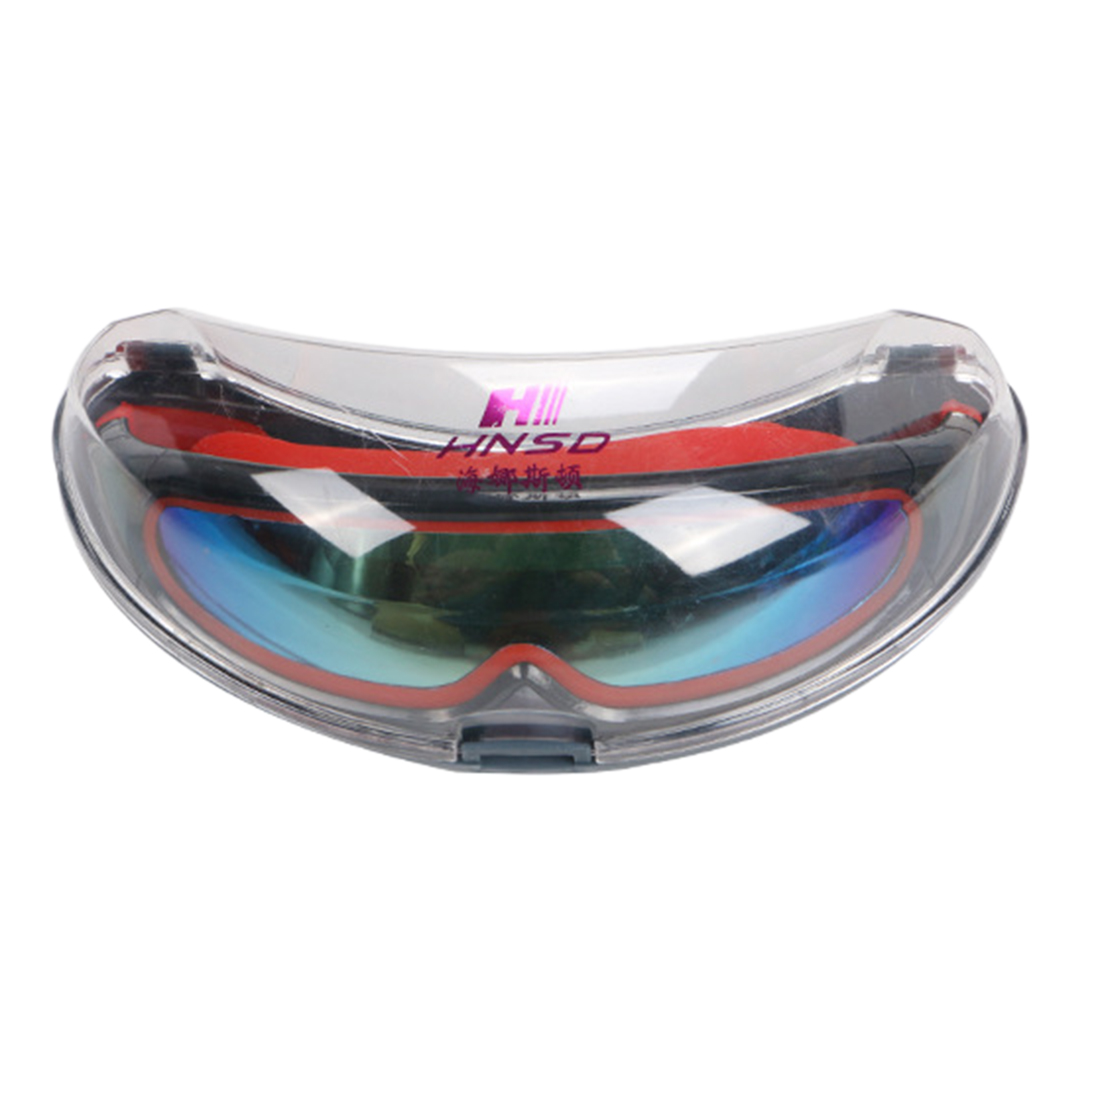 e761140191b1 UV Protection Kids Boys Girls Swim Goggles Anti fog Lights hard Case  Children Swimming Goggles Pool Protection Pool Safety-in Swimming Eyewear  from Sports ...